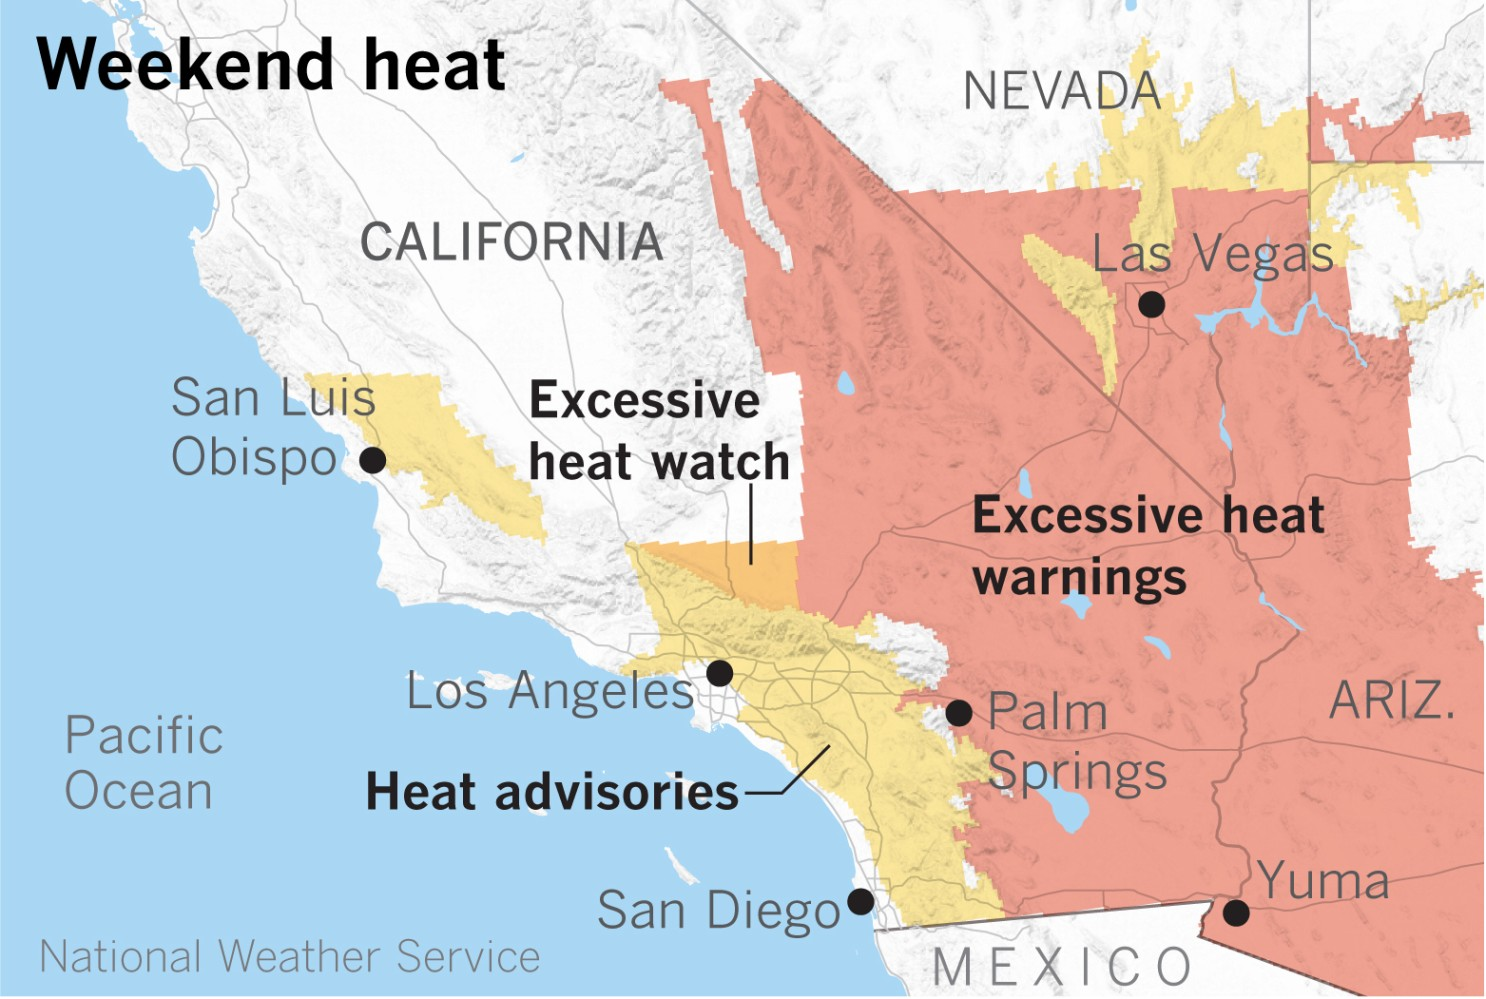 Excessive Heat Warnings Start Friday Ahead of a Toasty Weekend